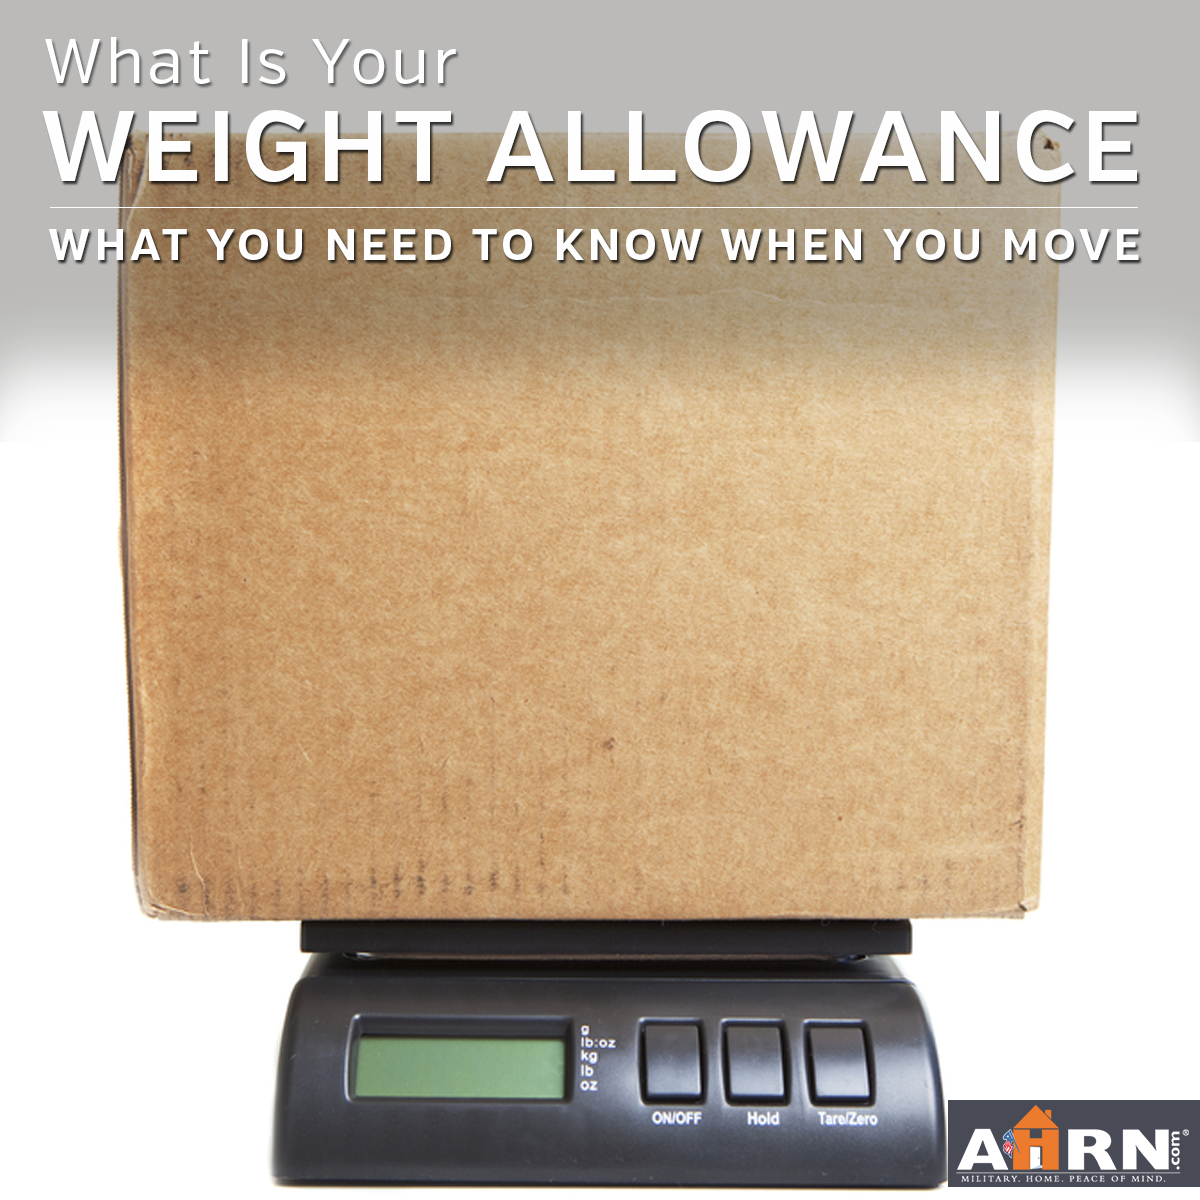 What is a pcs weight allowance ahrn what is your weight allowance what you need to know when you pcs with ahrn nvjuhfo Choice Image